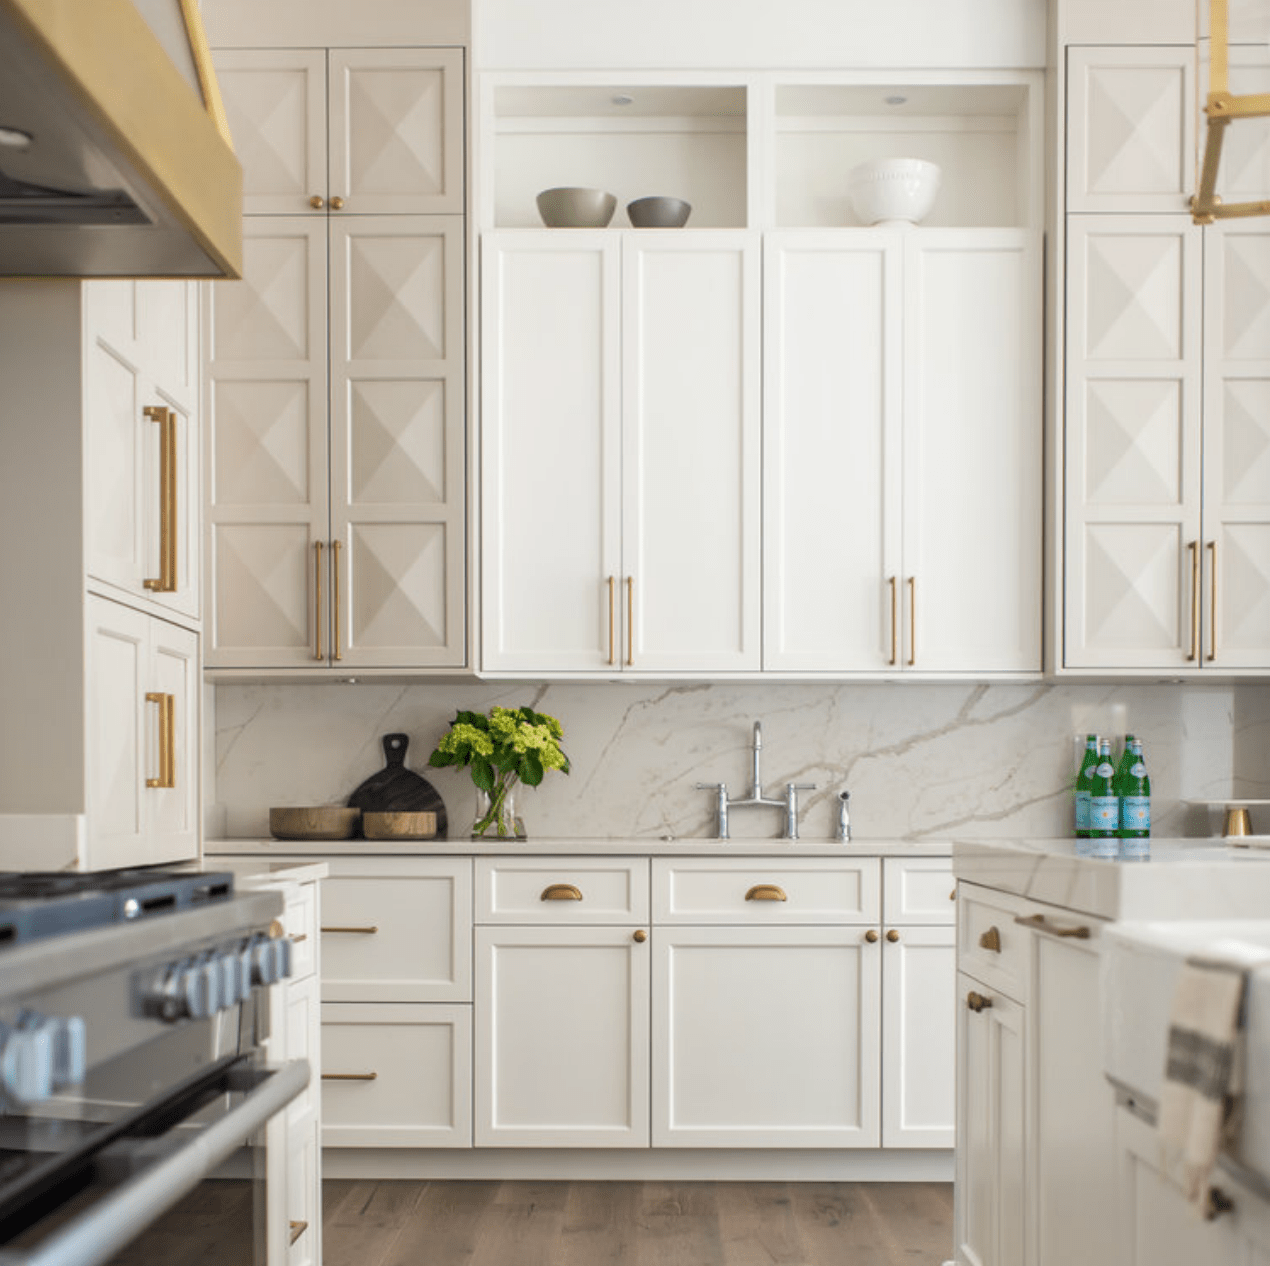 Blog   design tips, trends, and projects from Lindsay Hill ...